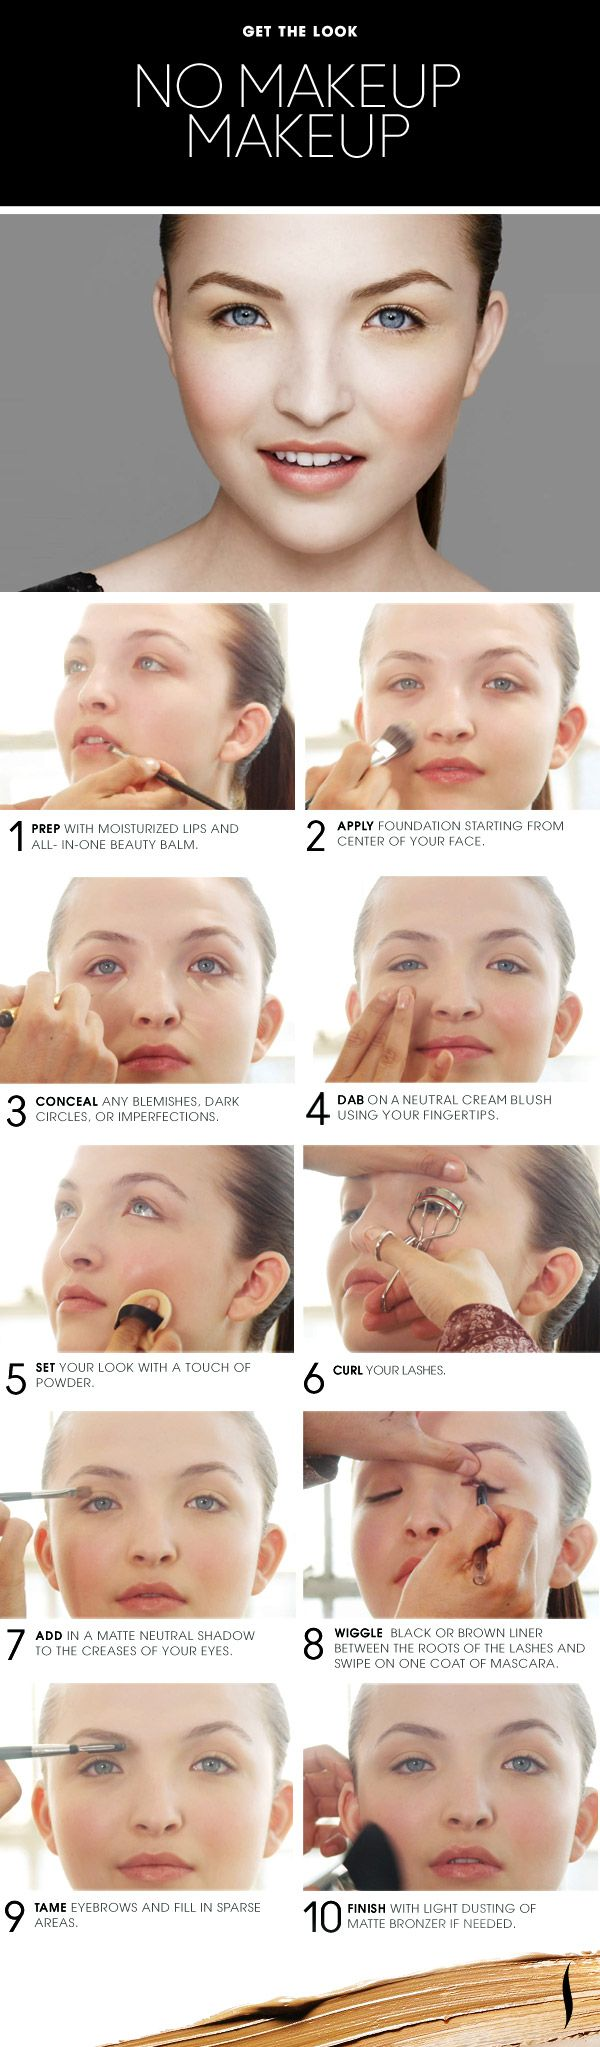 Beauty How To The No Makeup Makeup Look from Sephora